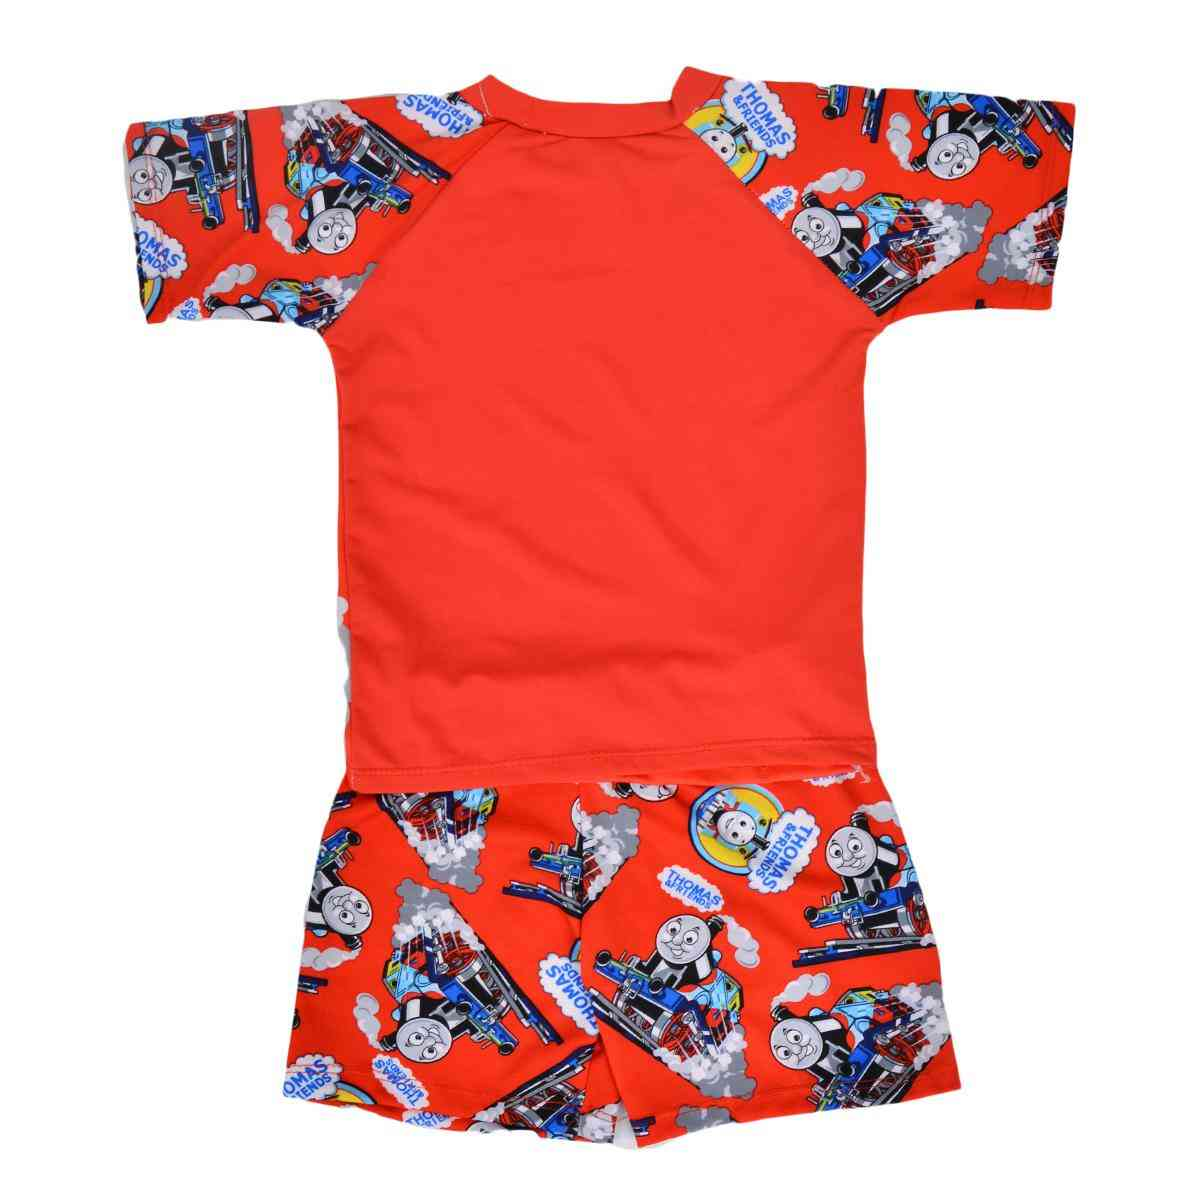 Thomas Train Swimming Suit for Kids - Red (3 to 4 Years)